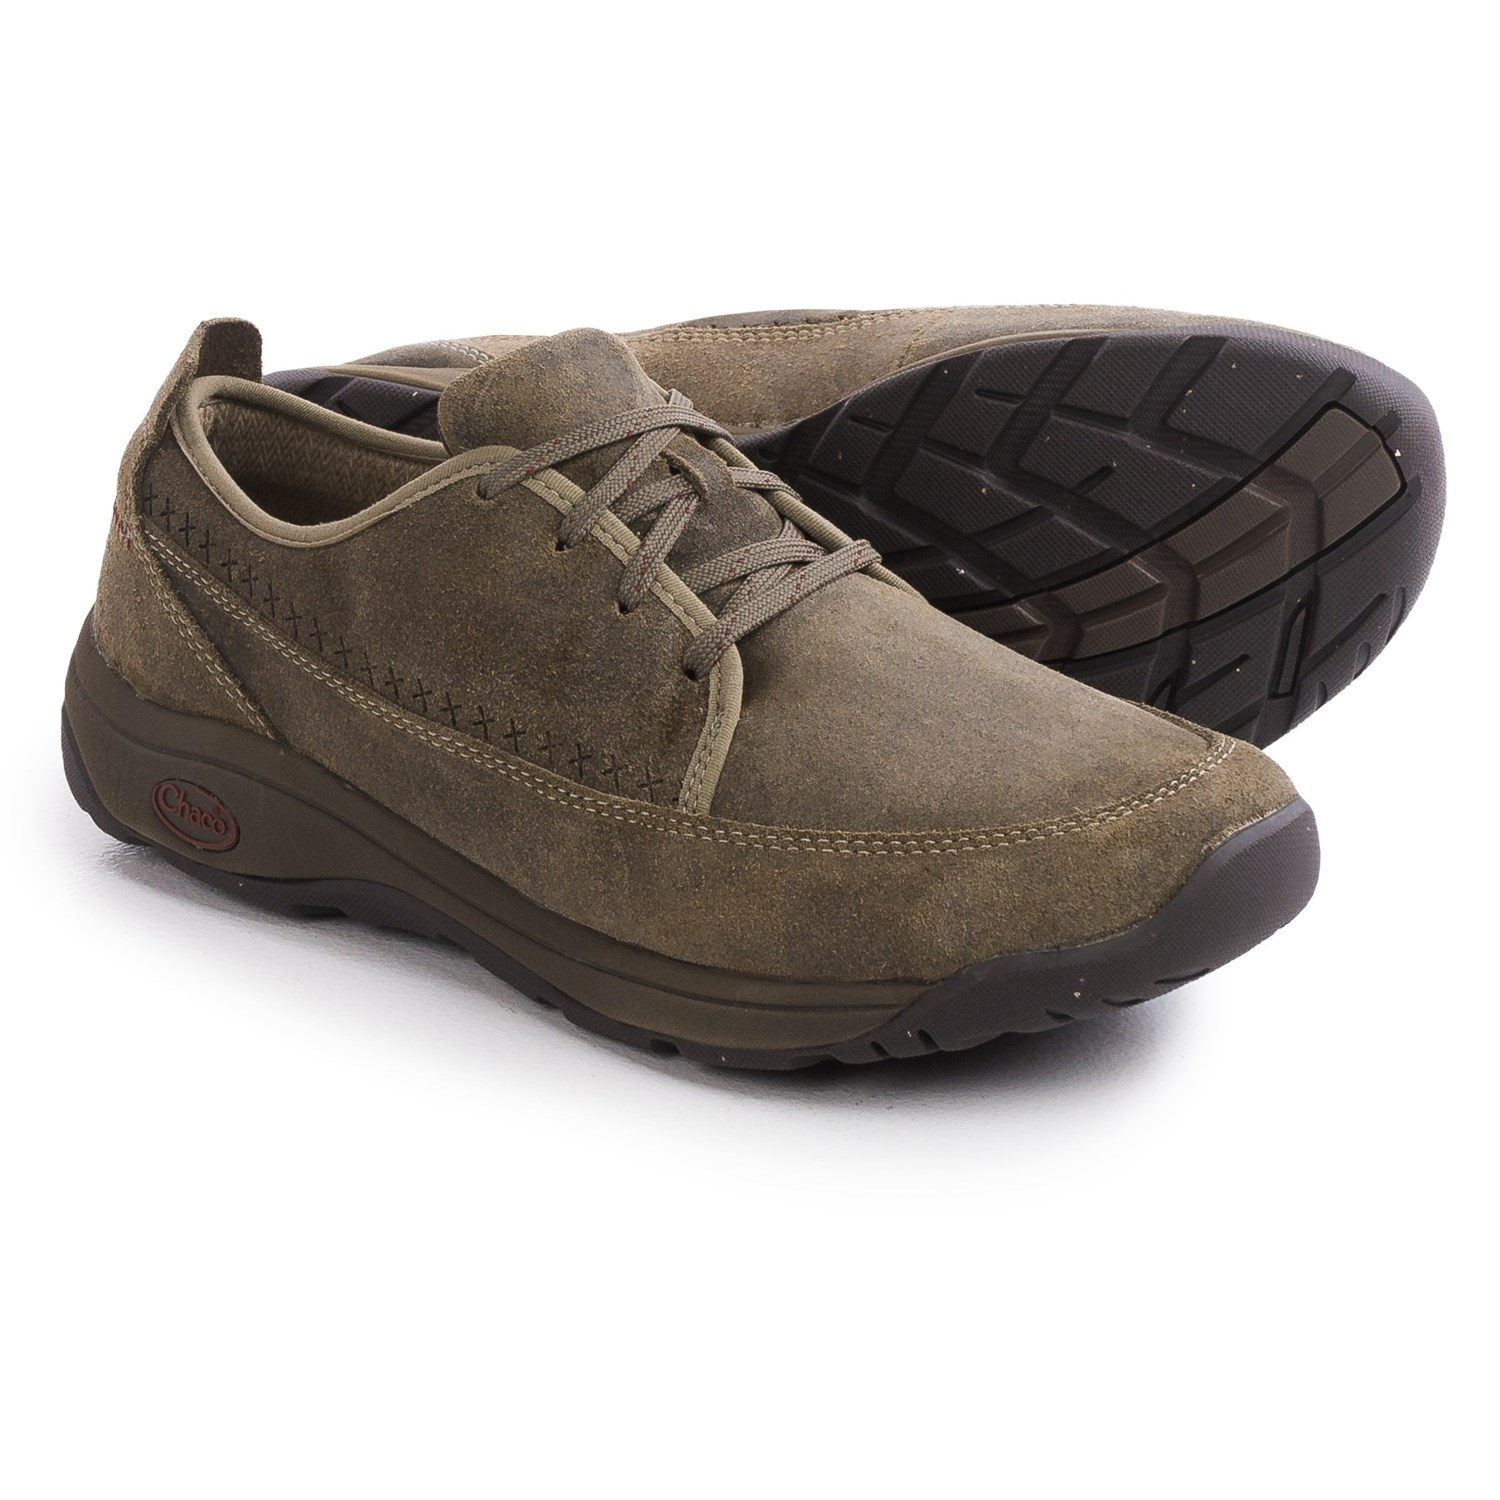 chaco everett shoes for save 30